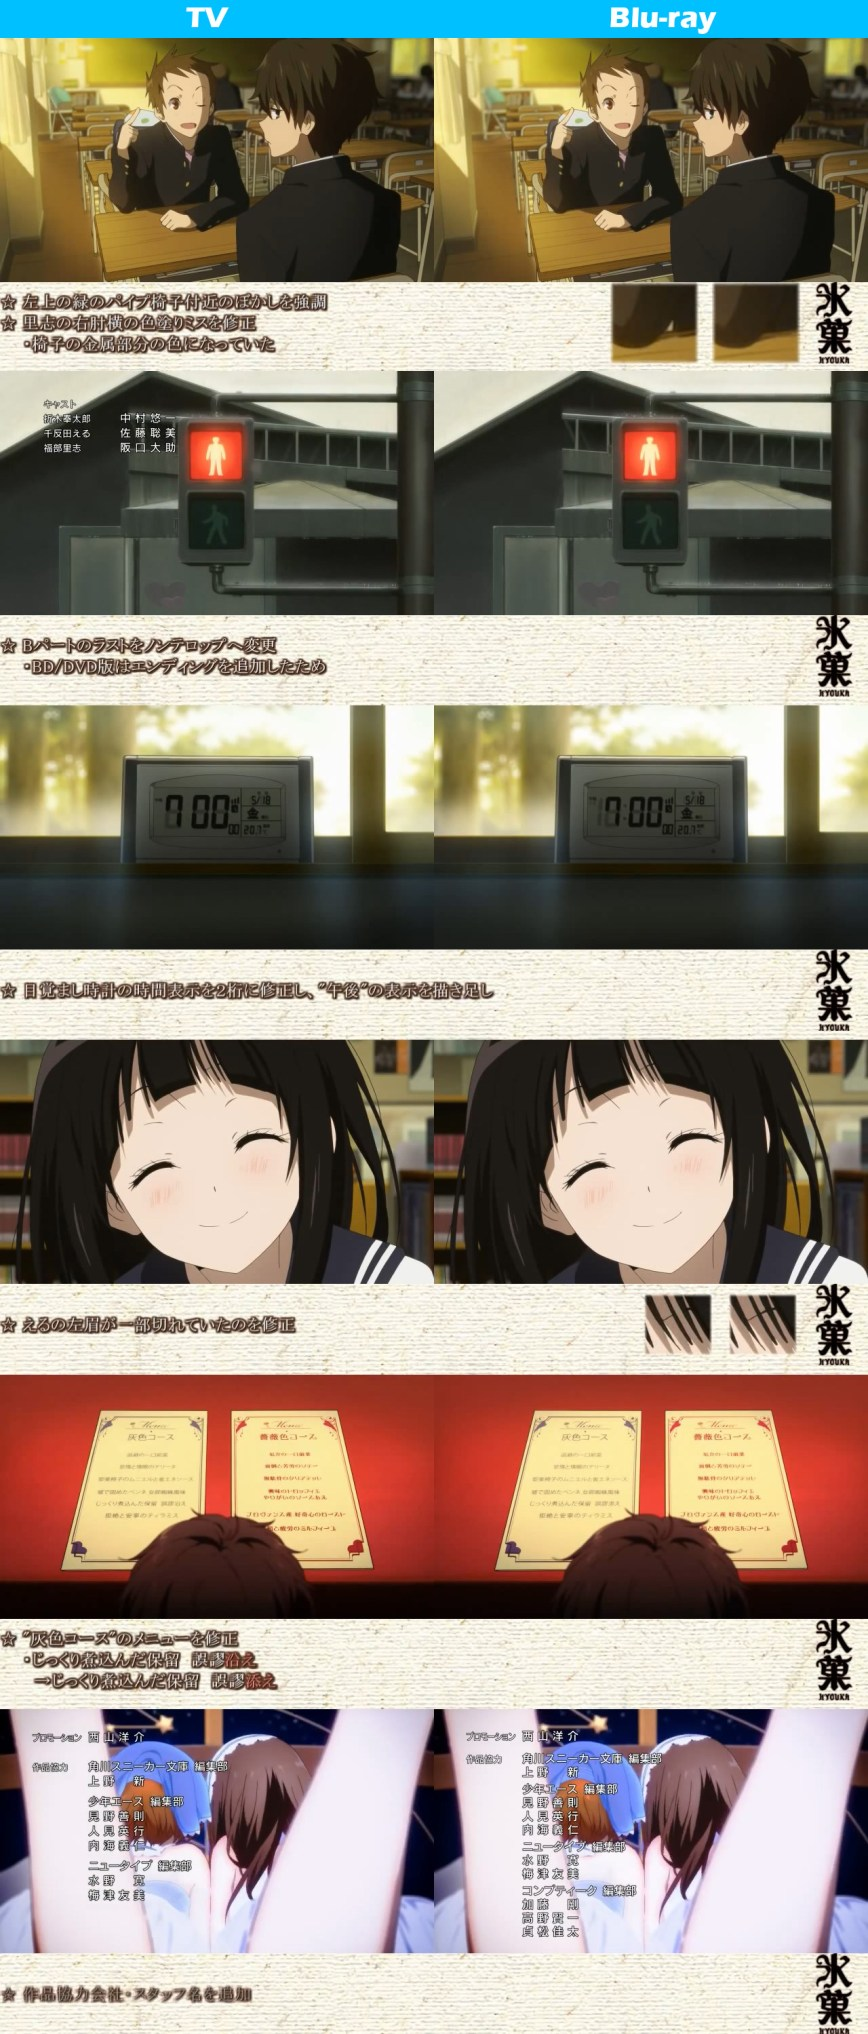 Hyouka-TV-vs-Blu-ray-Comparison